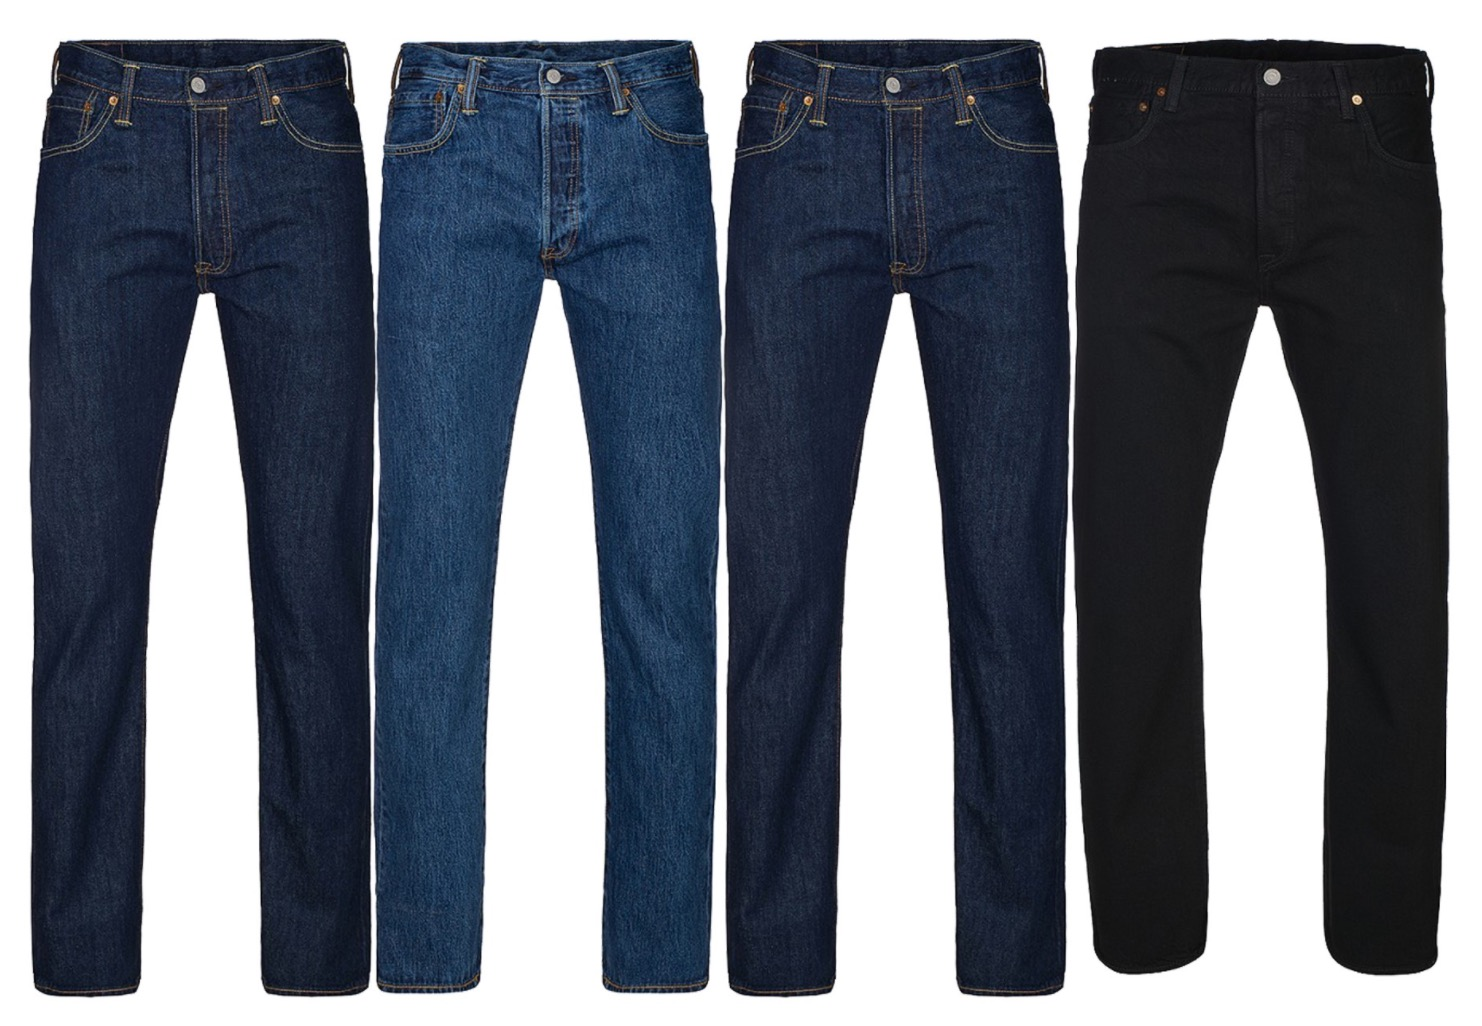 viele verschiedene levis original herren jeans f r je nur 44 99 euro. Black Bedroom Furniture Sets. Home Design Ideas